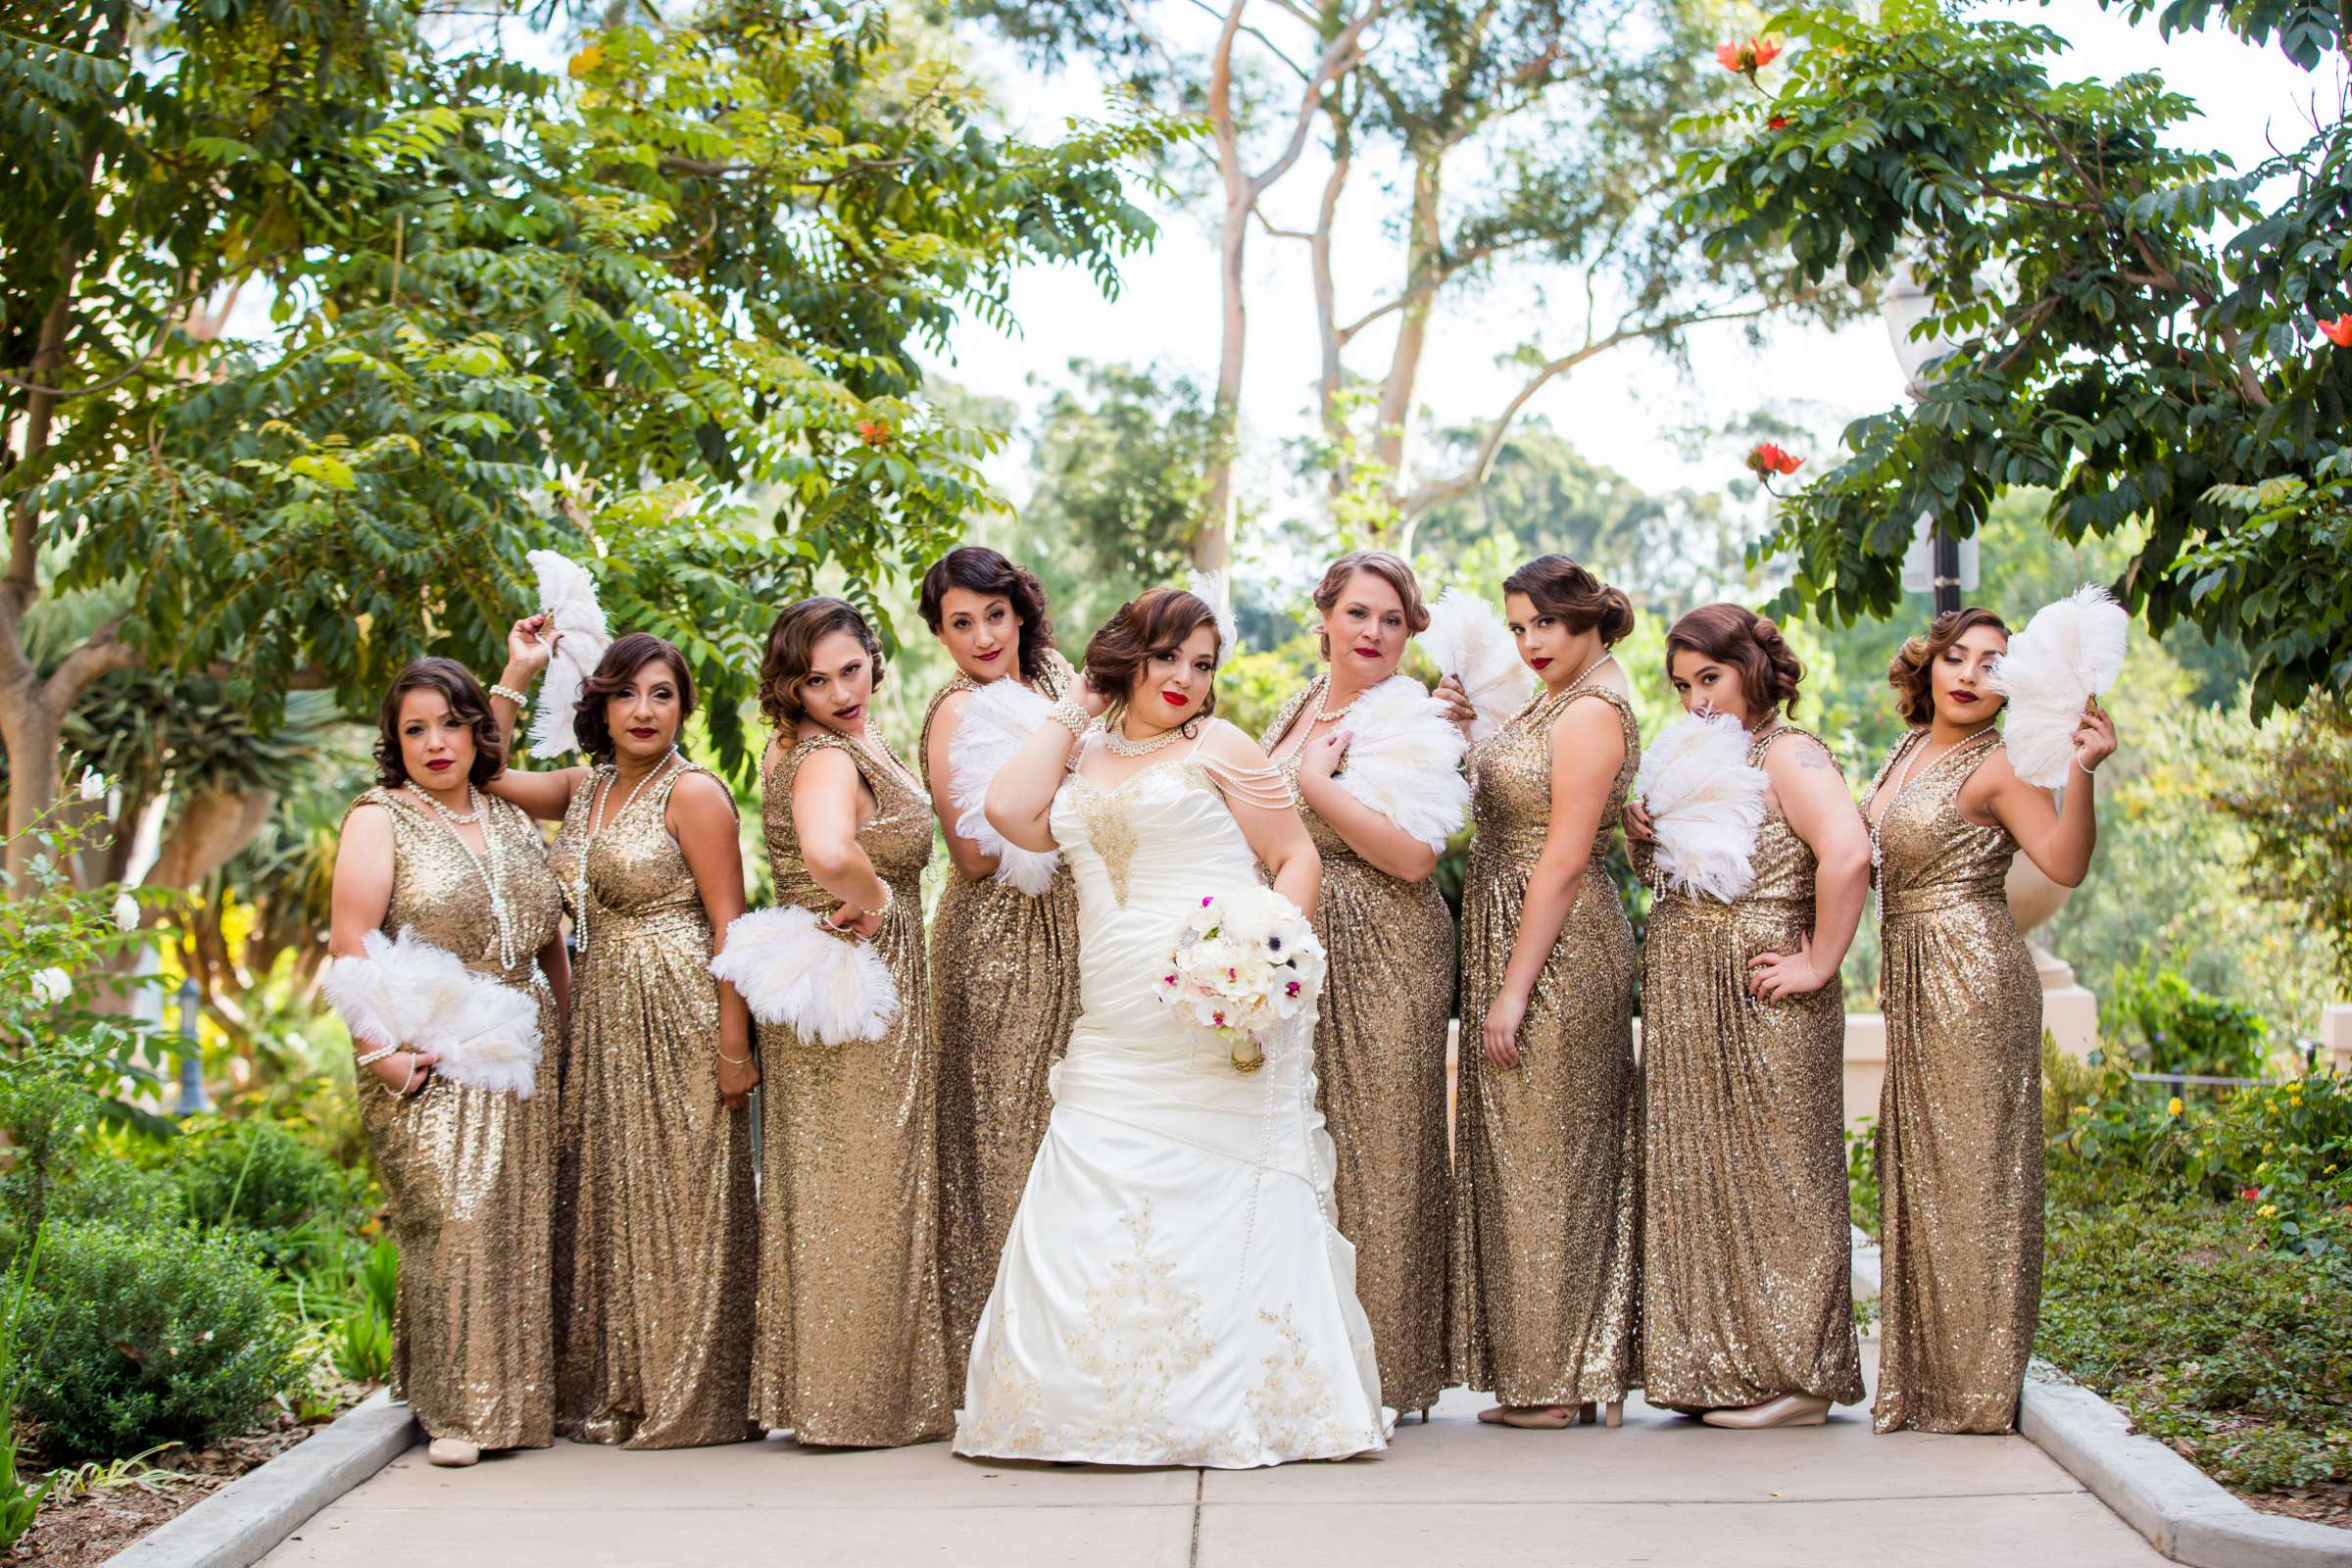 The Prado Wedding coordinated by Breezy Day Weddings, Aalis and Michael Wedding Photo #60 by True Photography